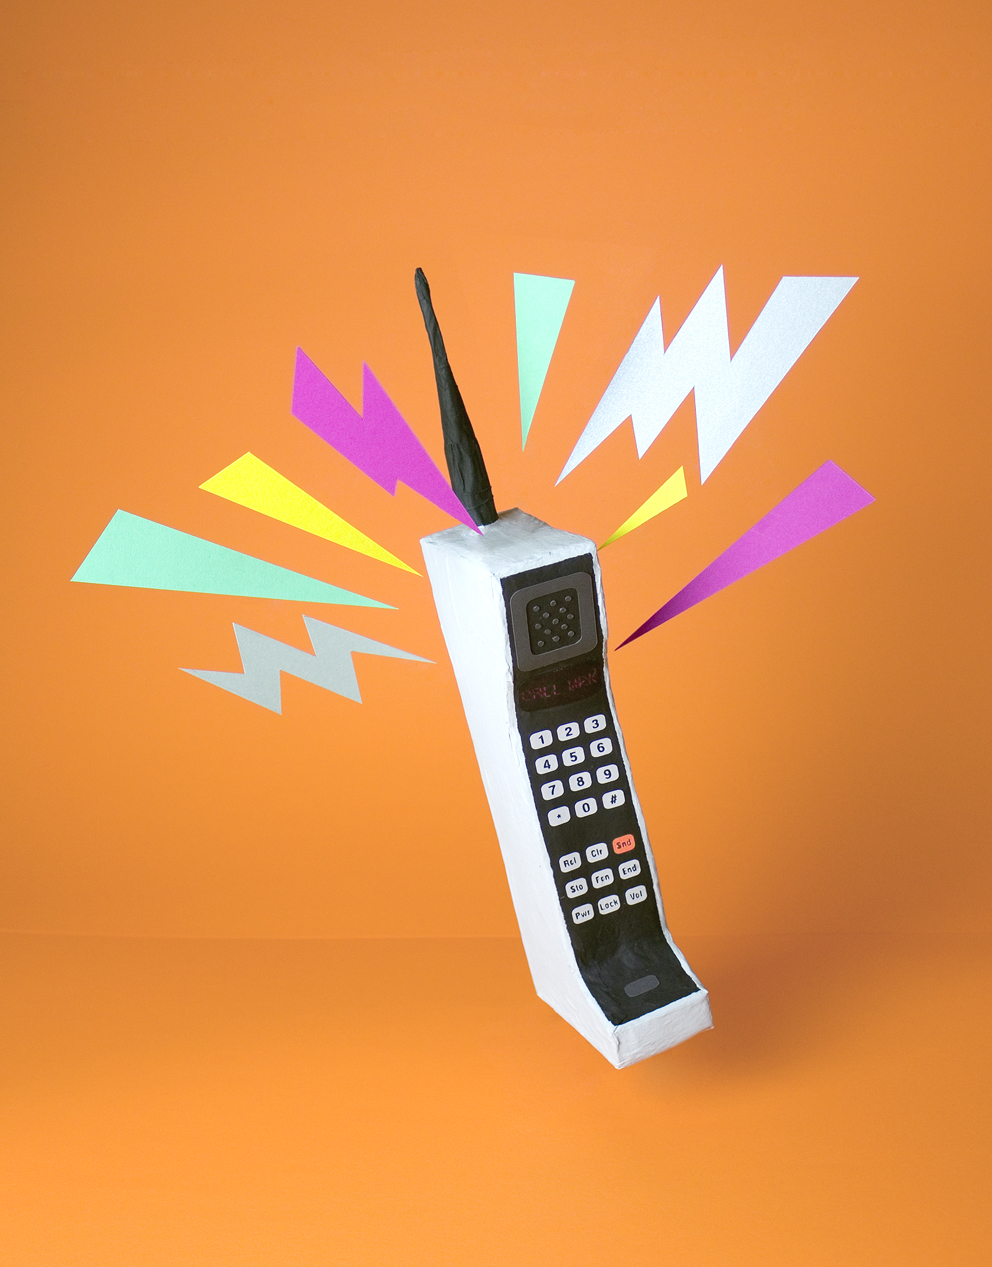 WRK_Graphicdesign_Tactile_Illustration_Papercraft_Motorola_DynaTAC8000X_Andrea Weber_DamounTamir.jpg